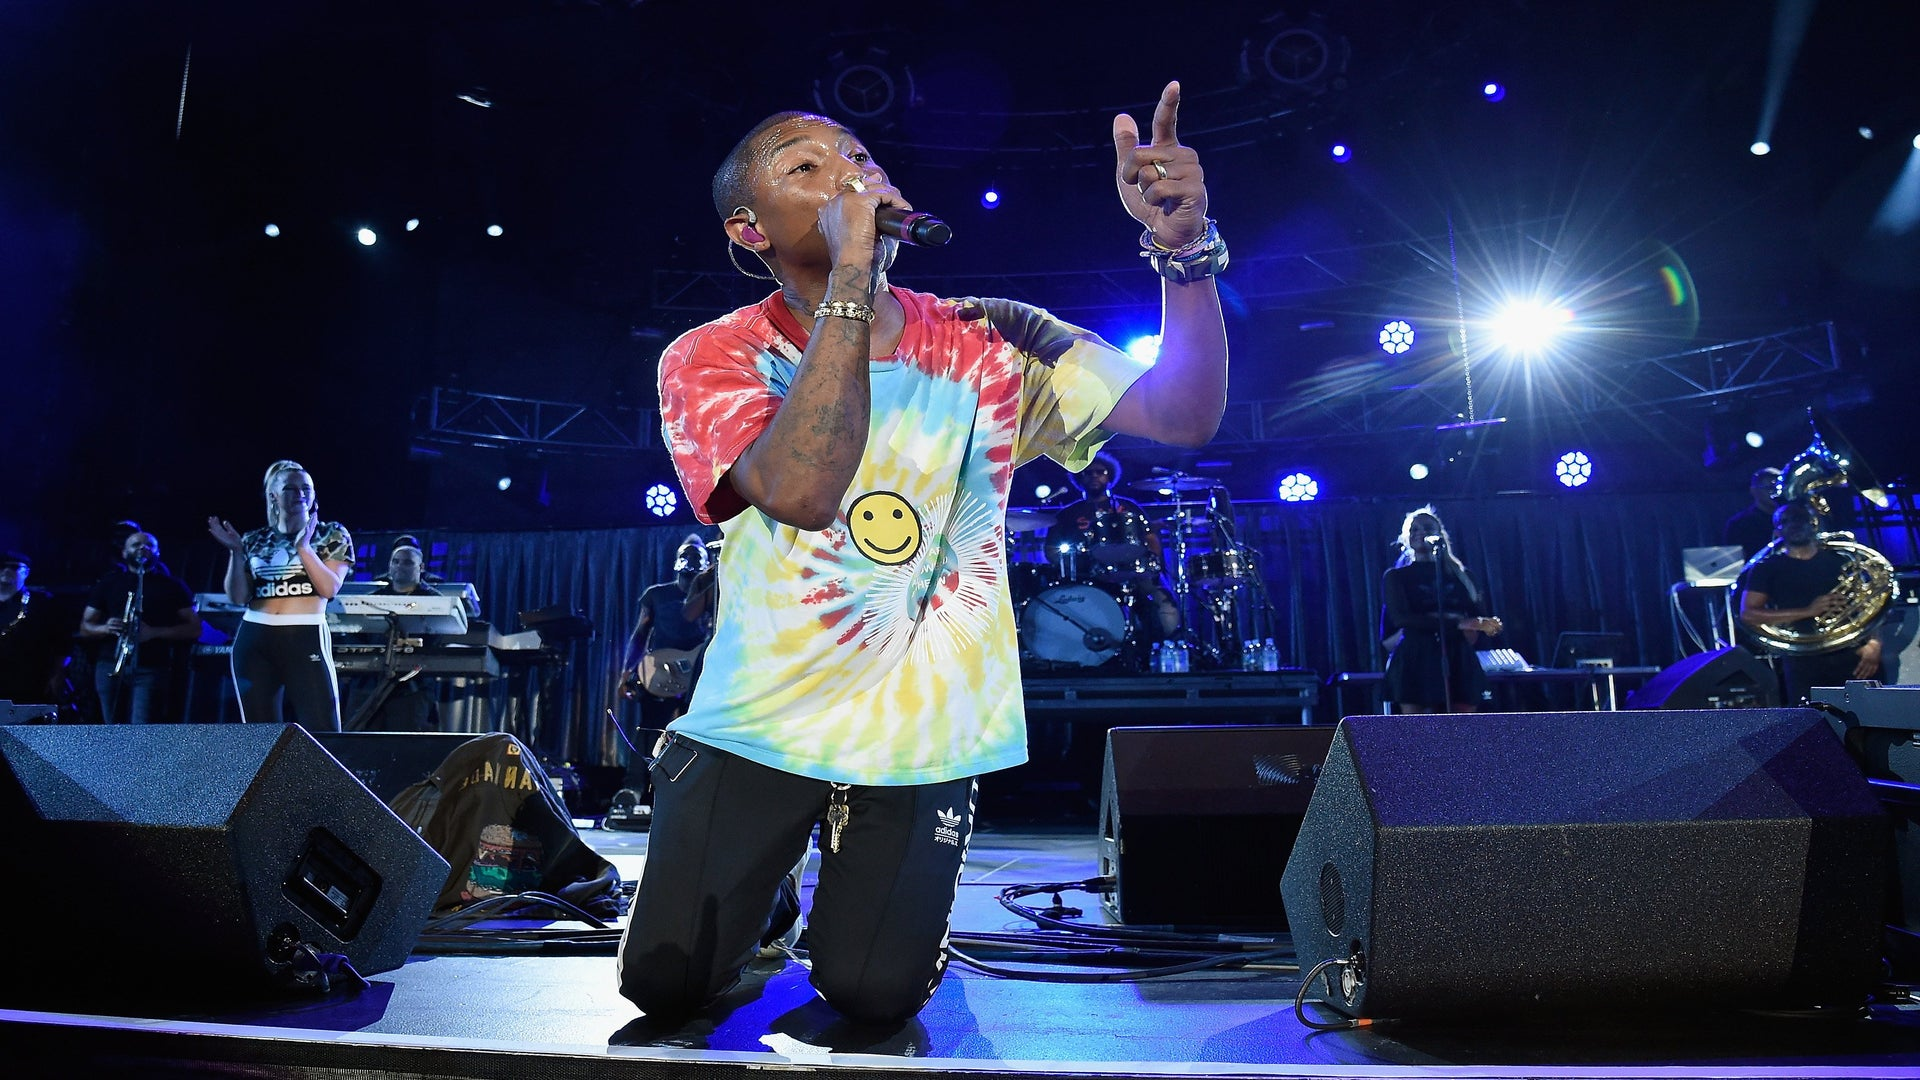 'That's What That Flag Is For.' Pharrell Williams Takes The Knee During Charlottesville Concert